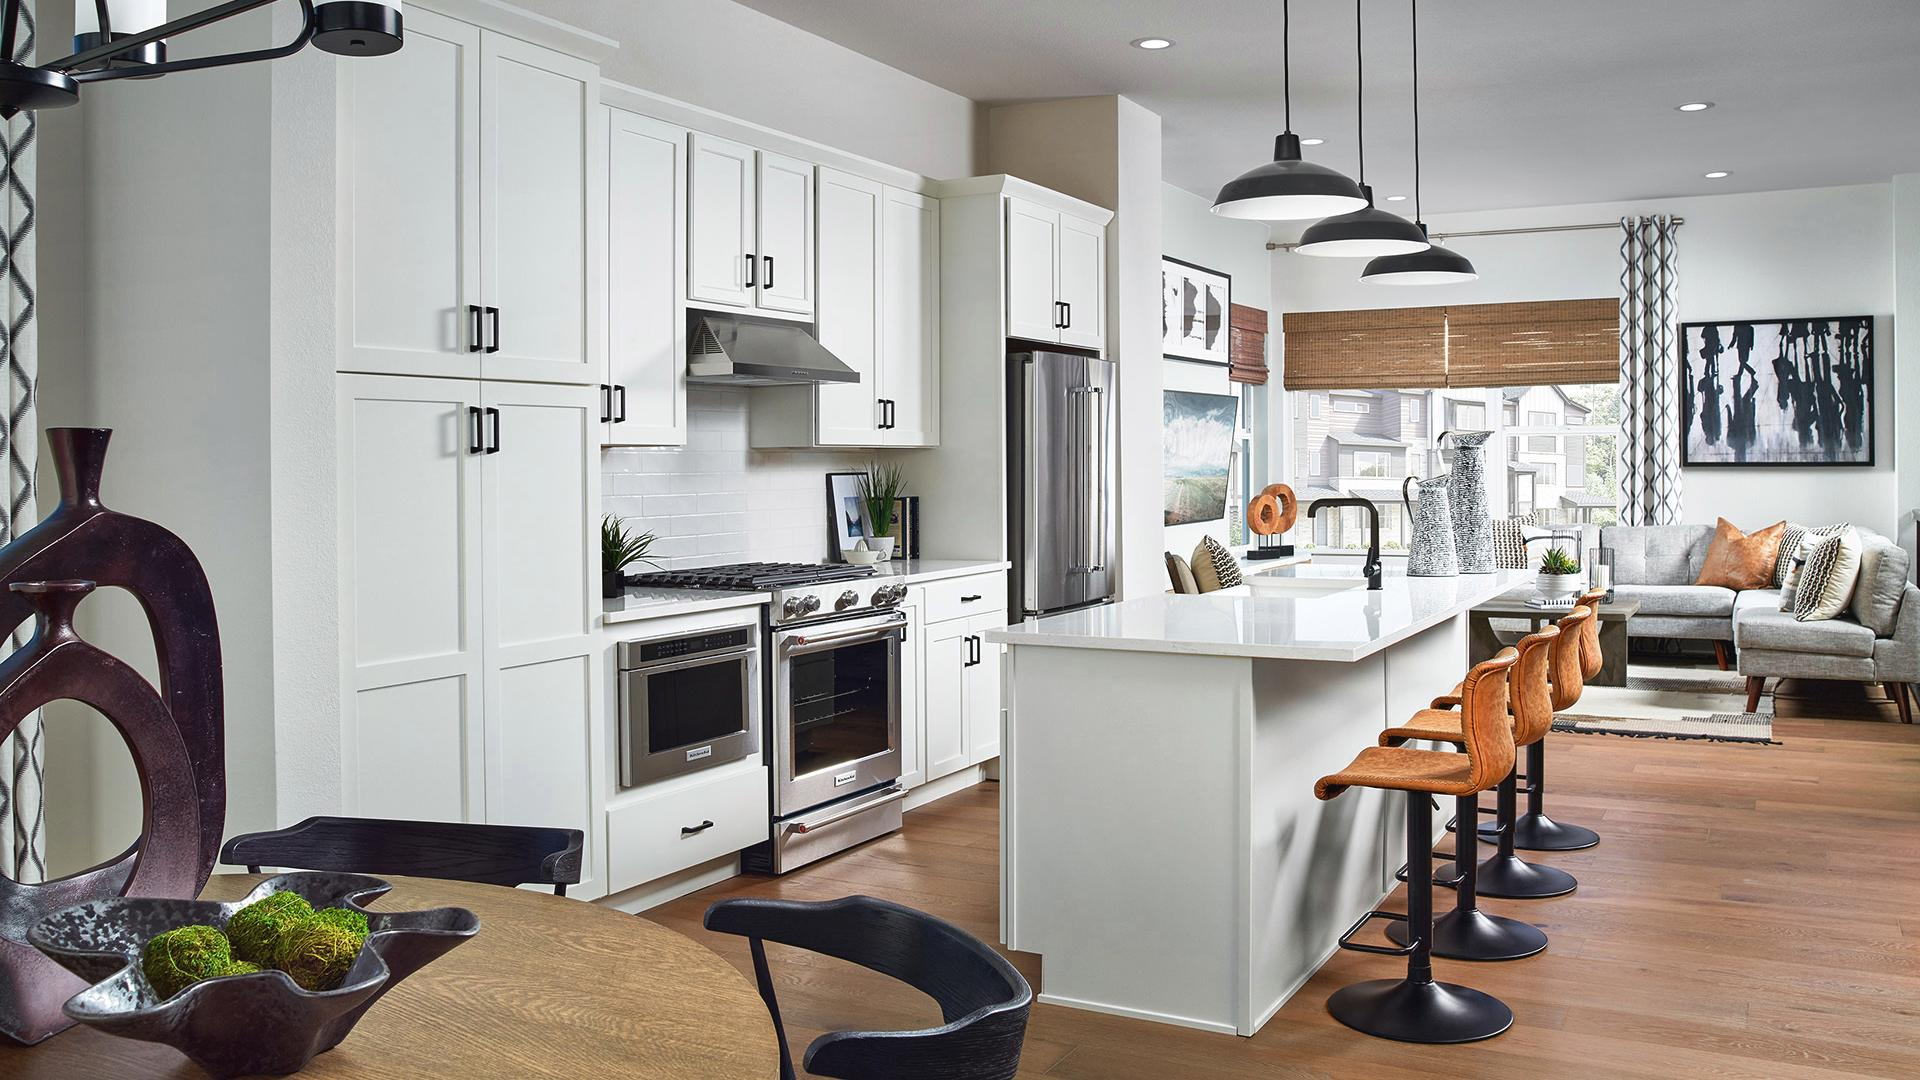 Baker kitchen open to great room